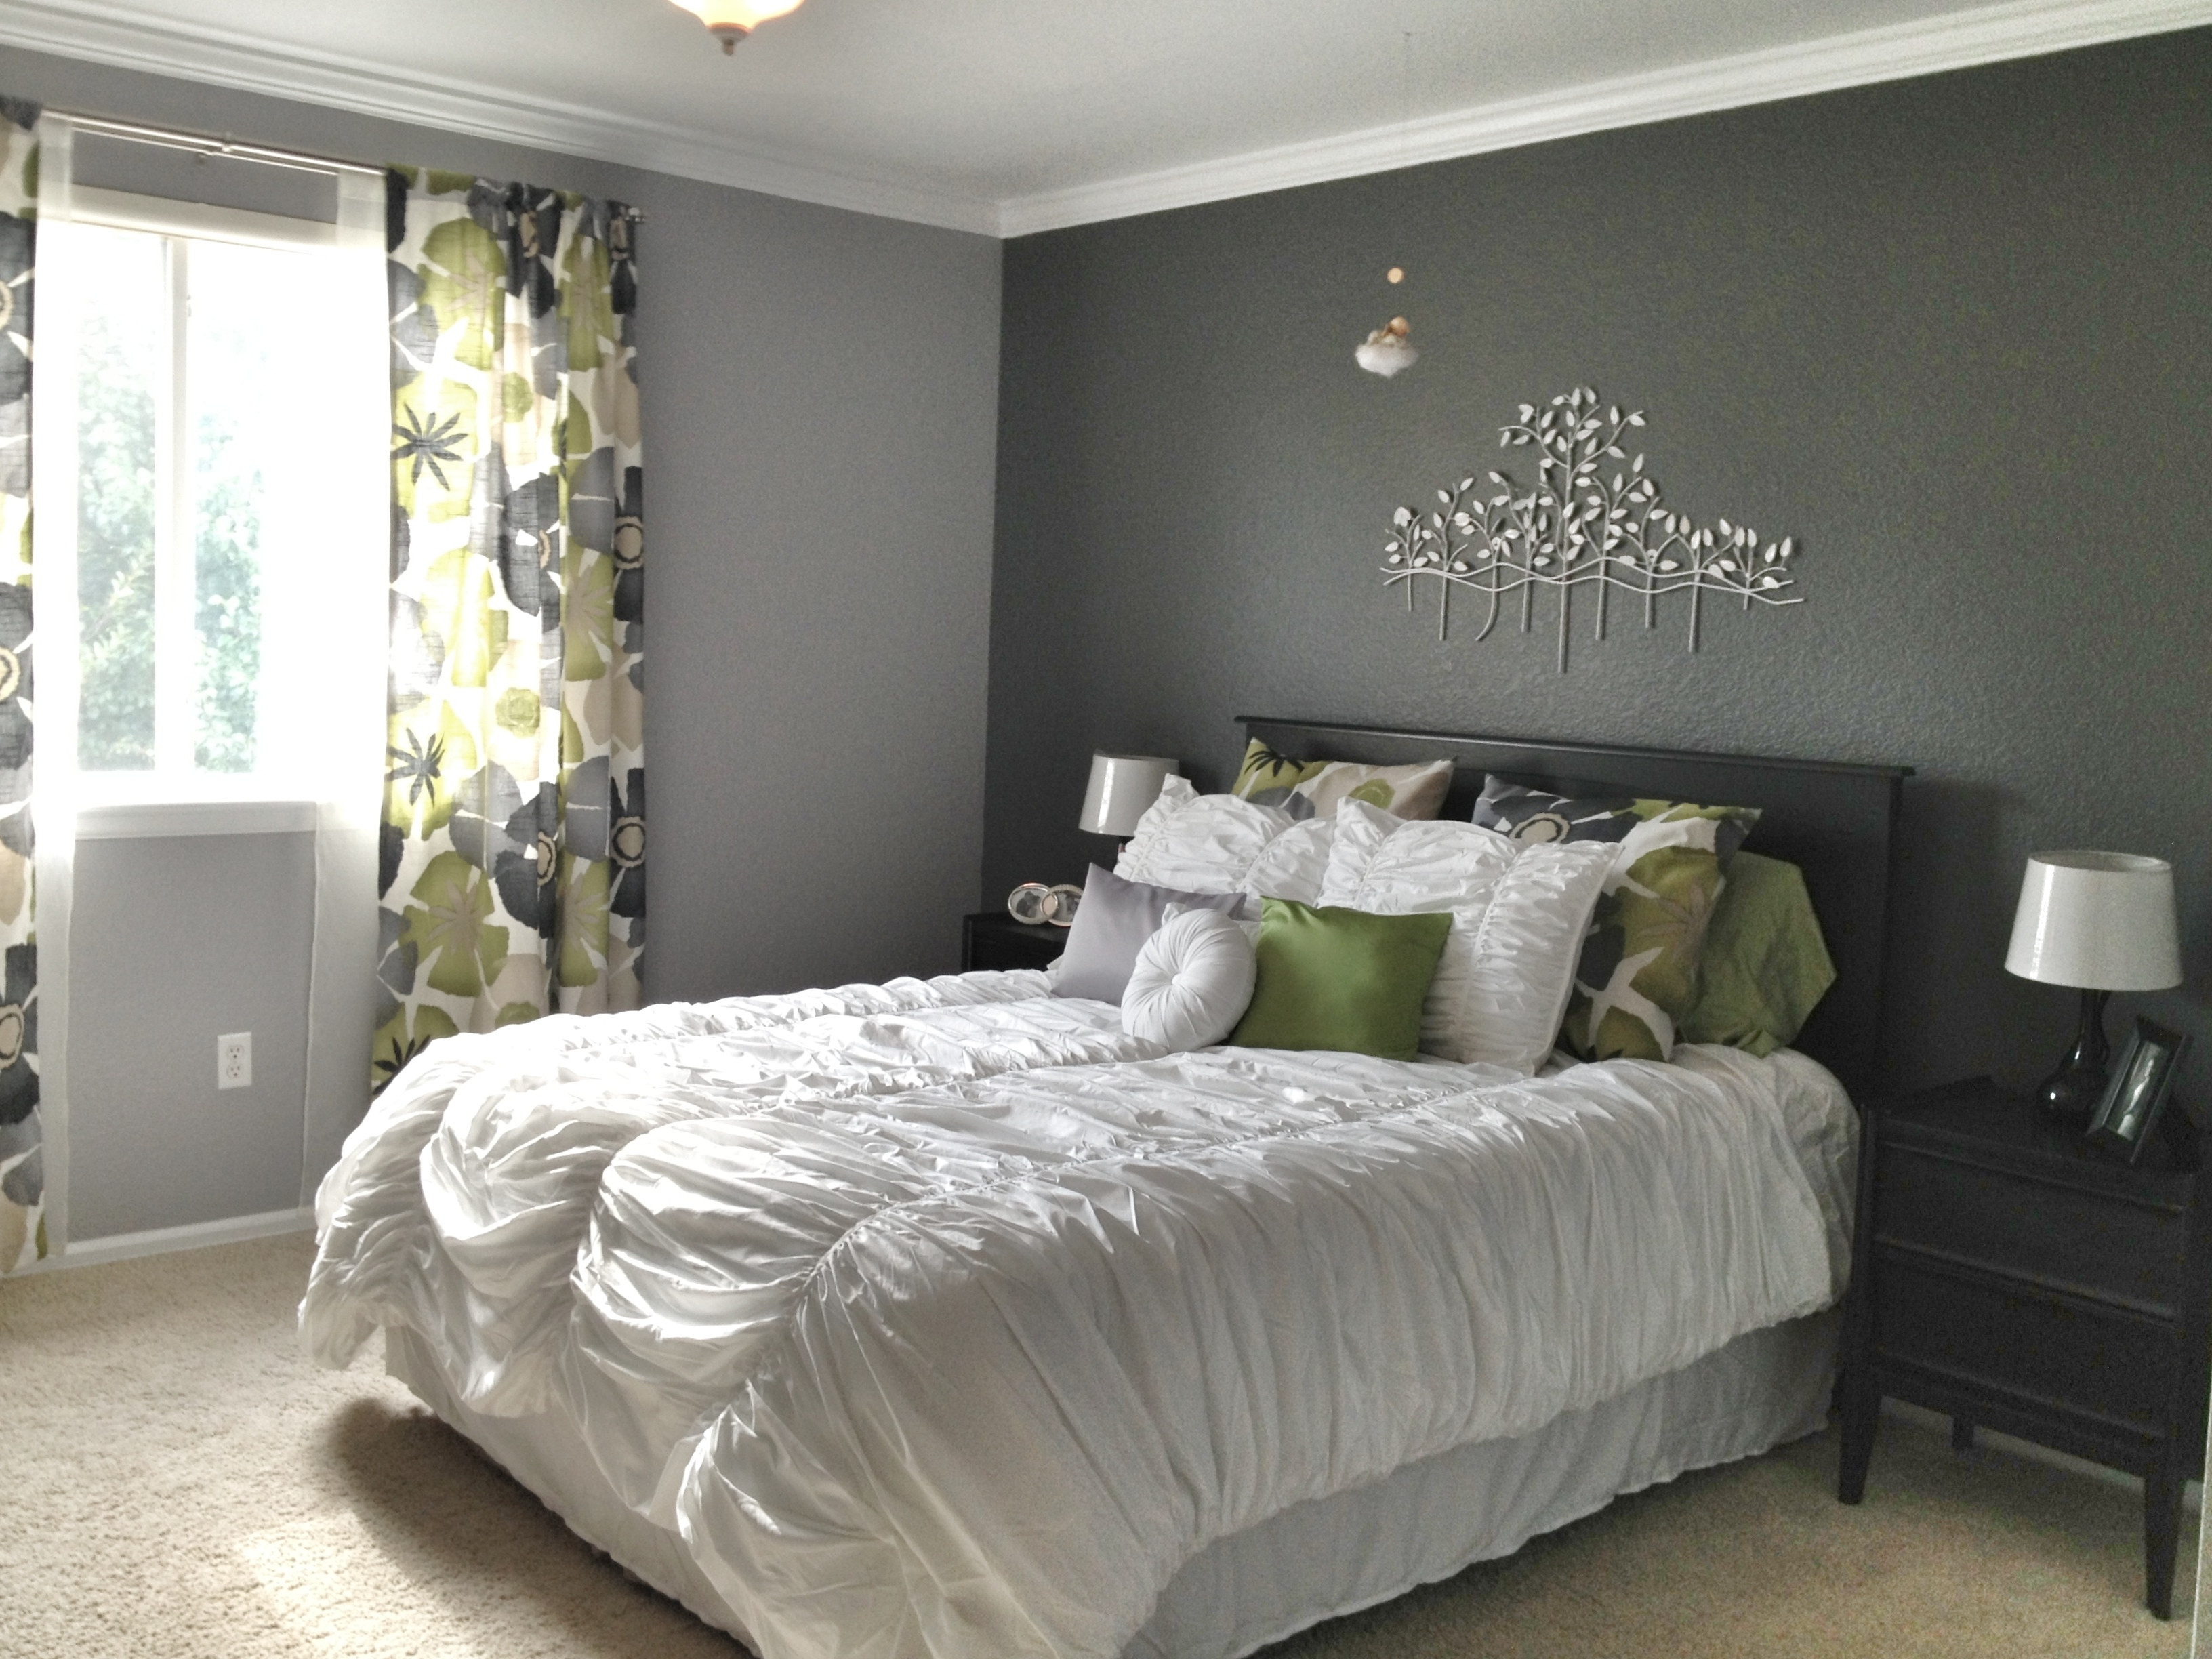 Best ideas about Accent Wall Decor . Save or Pin 15 Ideas of Wallpaper Bedroom Wall Accents Now.